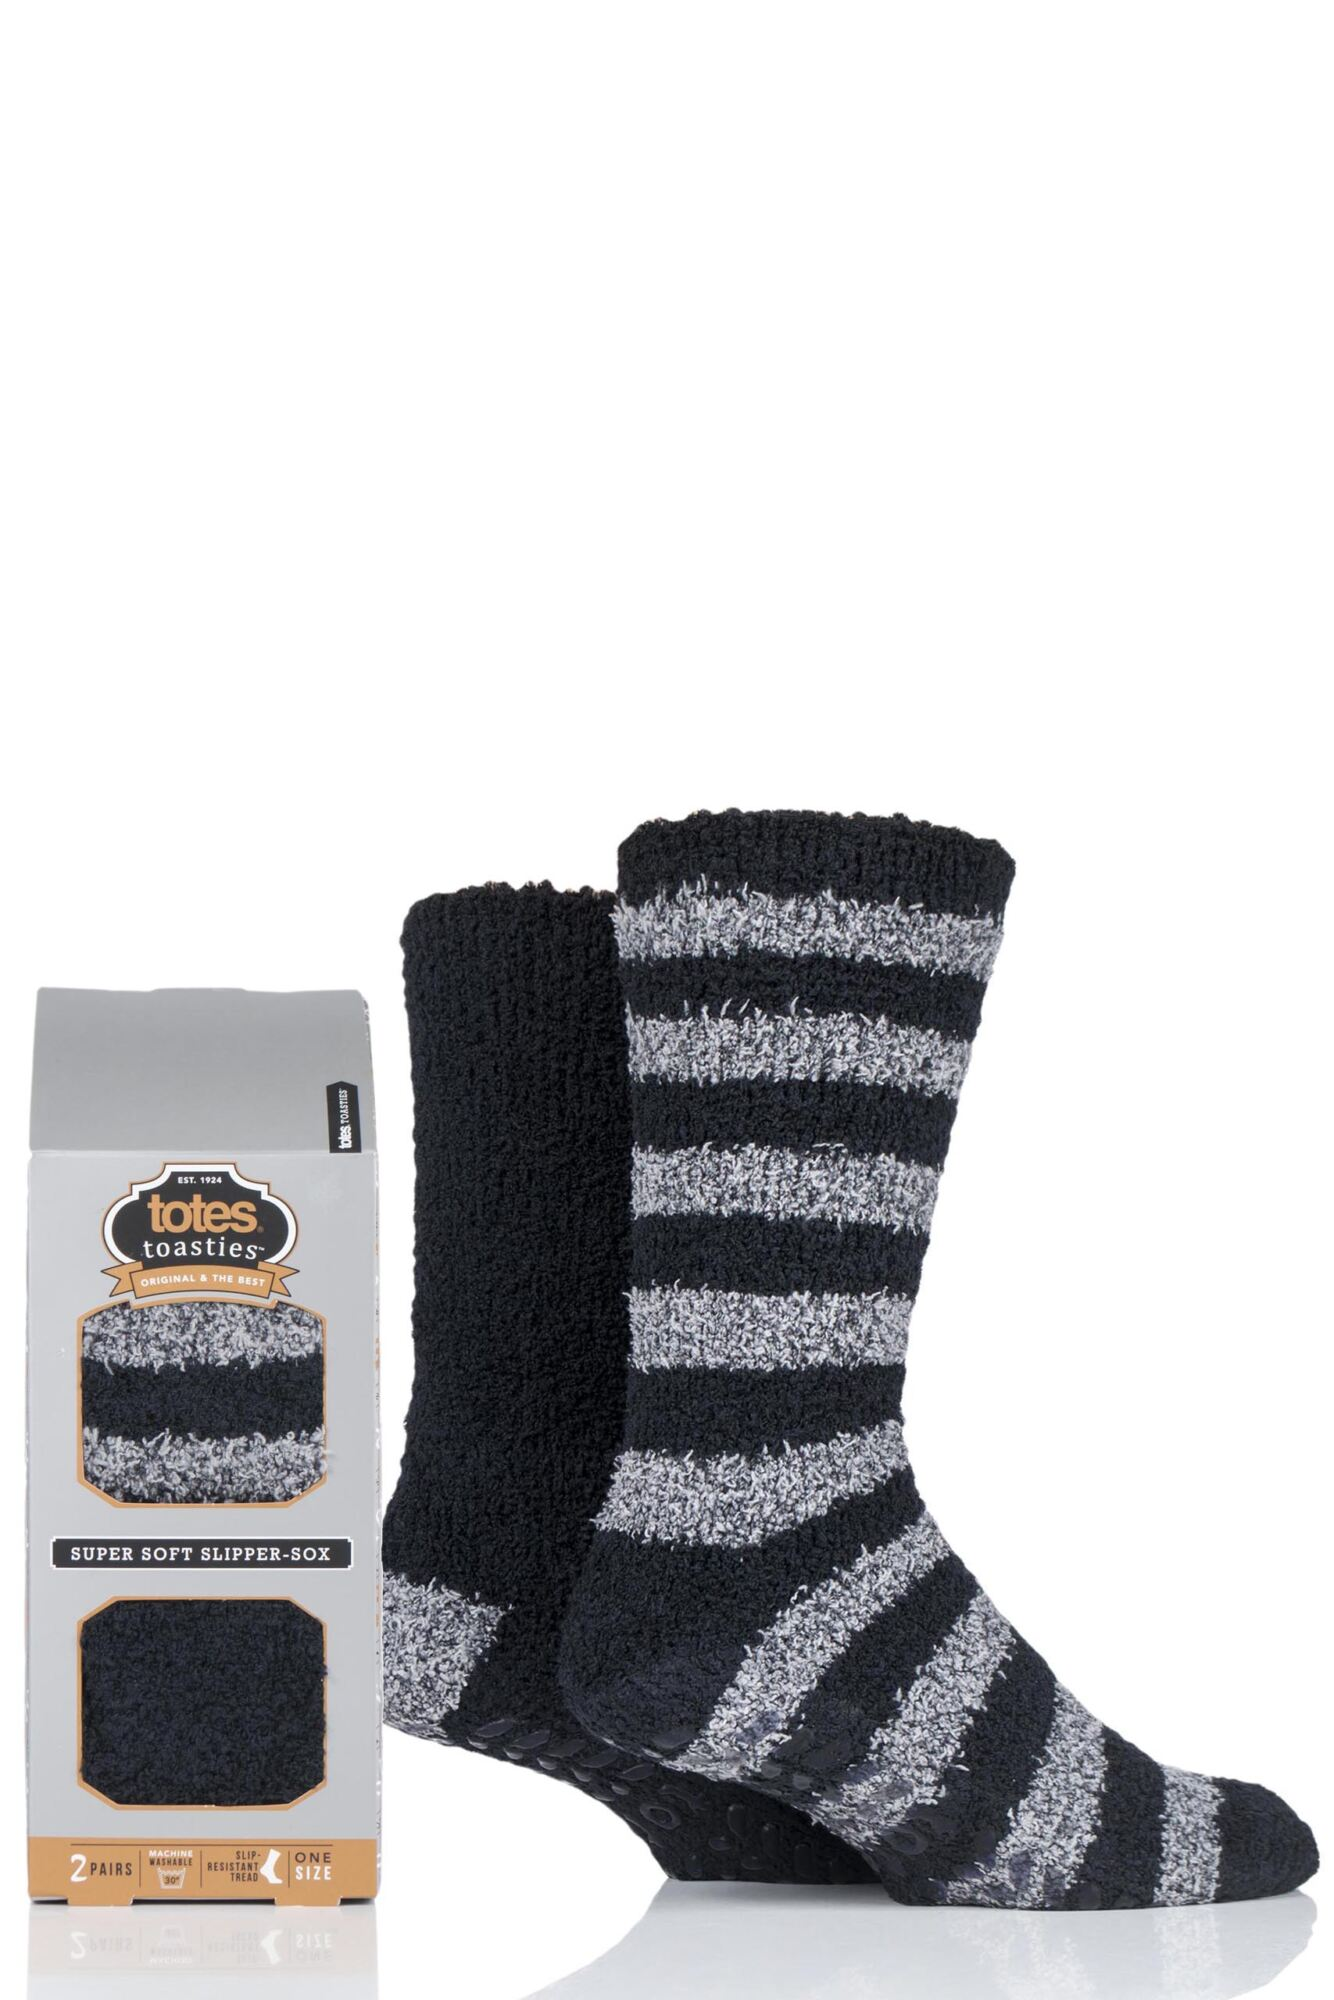 2 Pair Twin Super Soft Stripe and Plain Bed Socks Men's - Totes